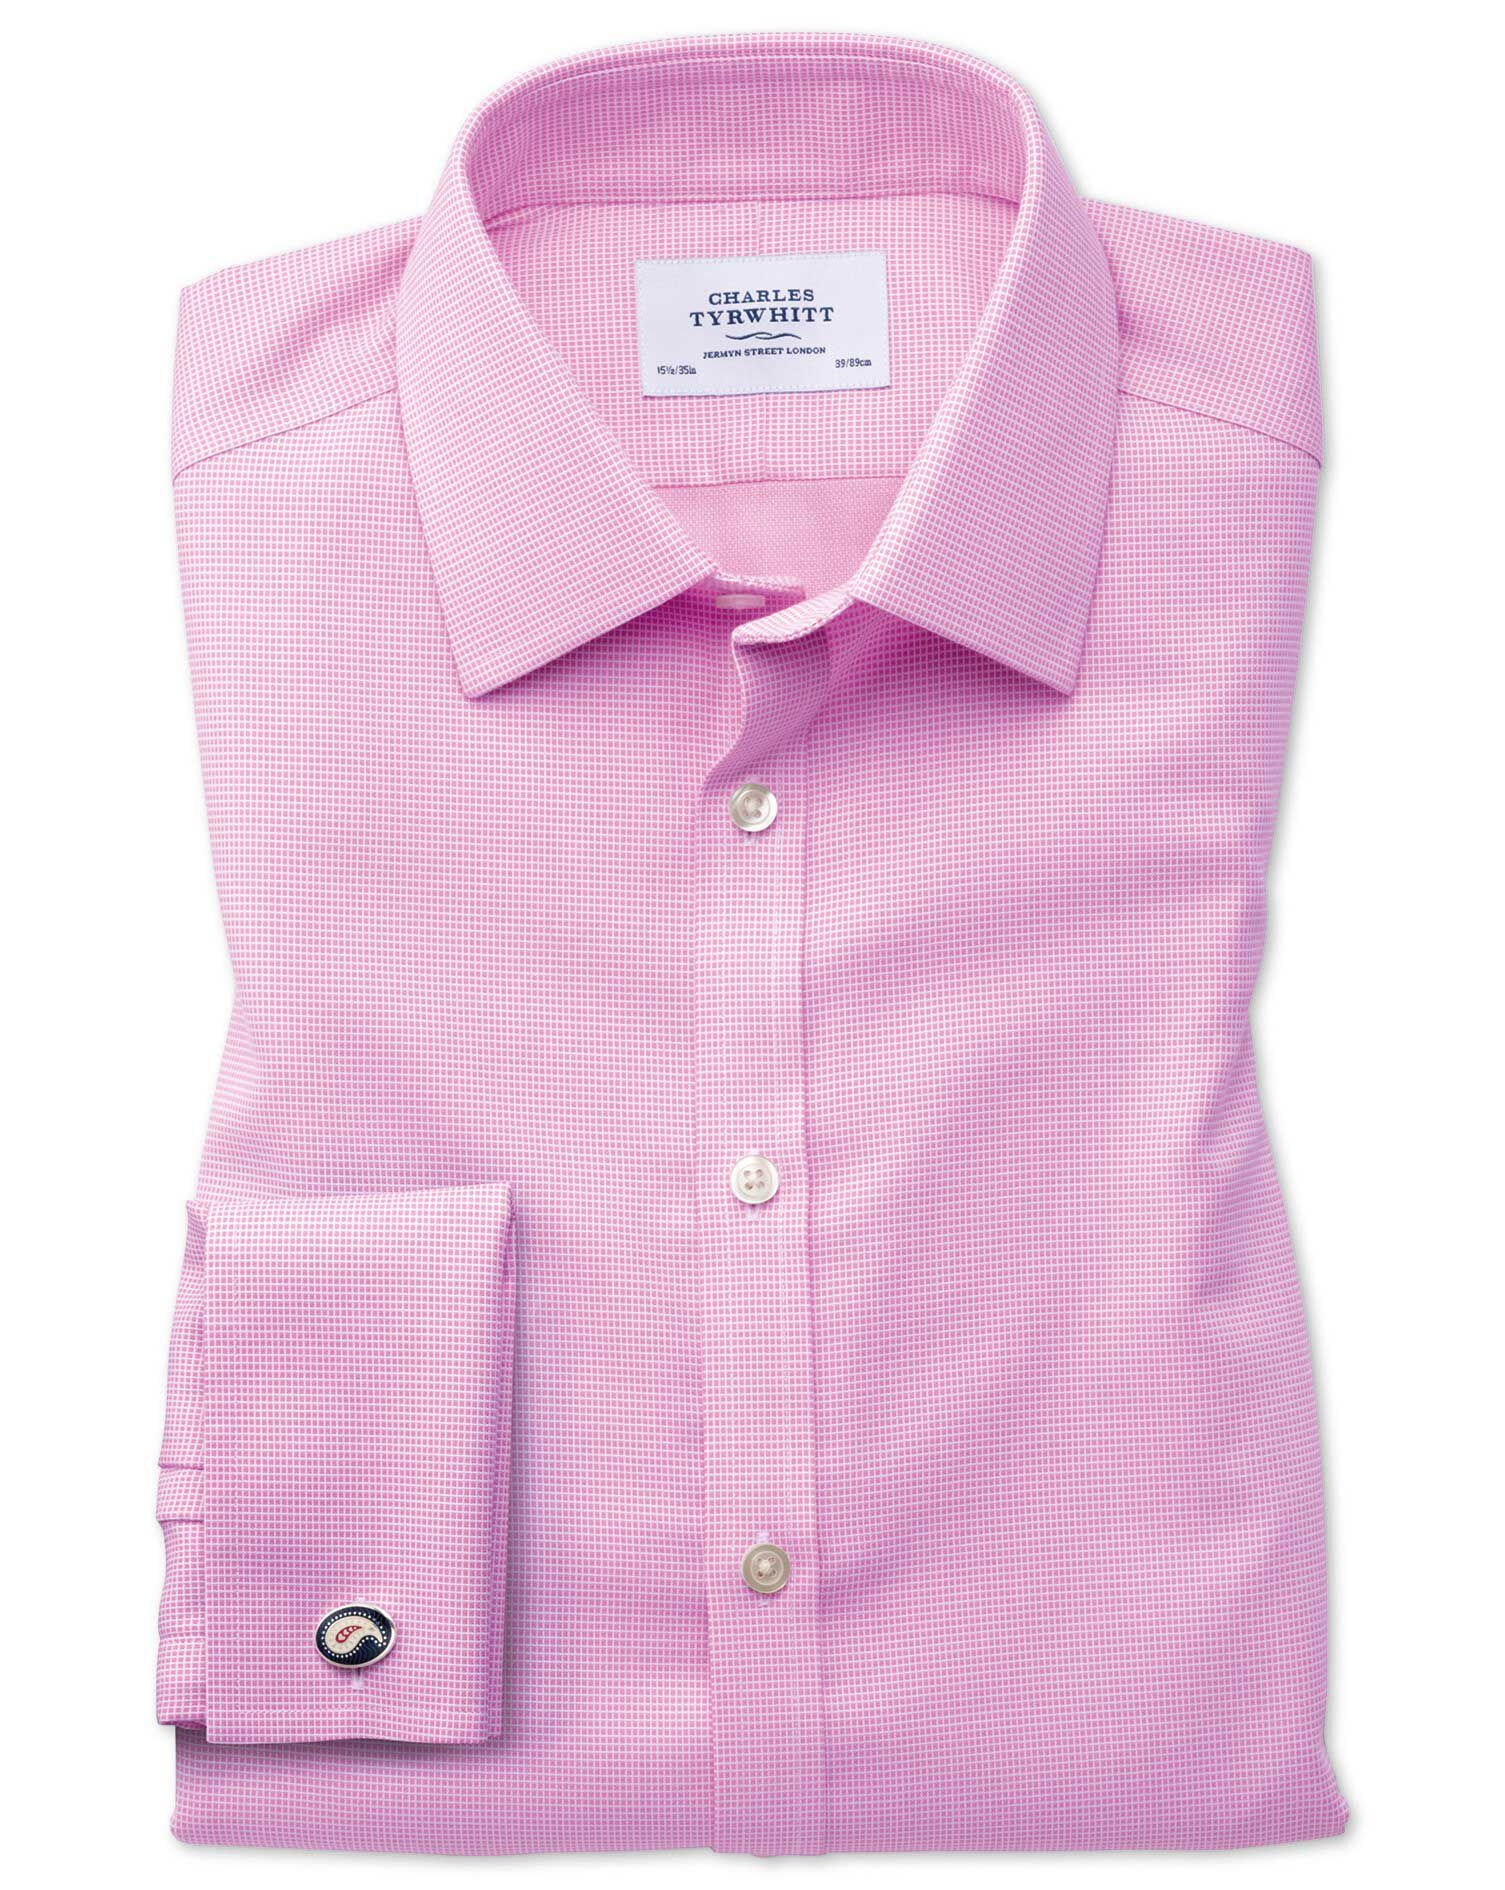 Slim Fit Non-Iron Square Weave Pink Cotton Formal Shirt Single Cuff Size 14.5/33 by Charles Tyrwhitt